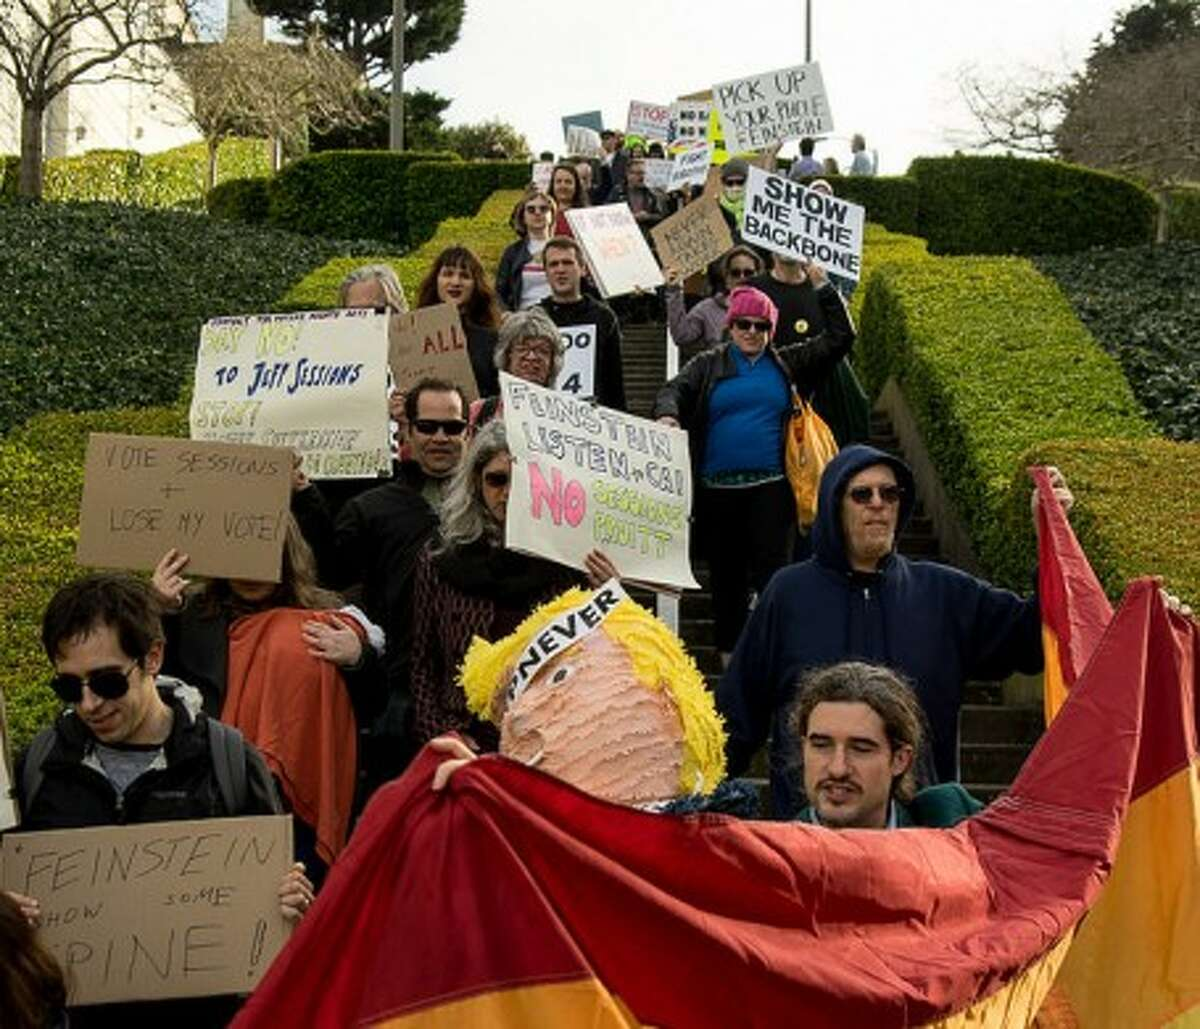 200 demonstrators descended on dianne feinstein s house to protest her support for trump s nominees 200 demonstrators descended on dianne